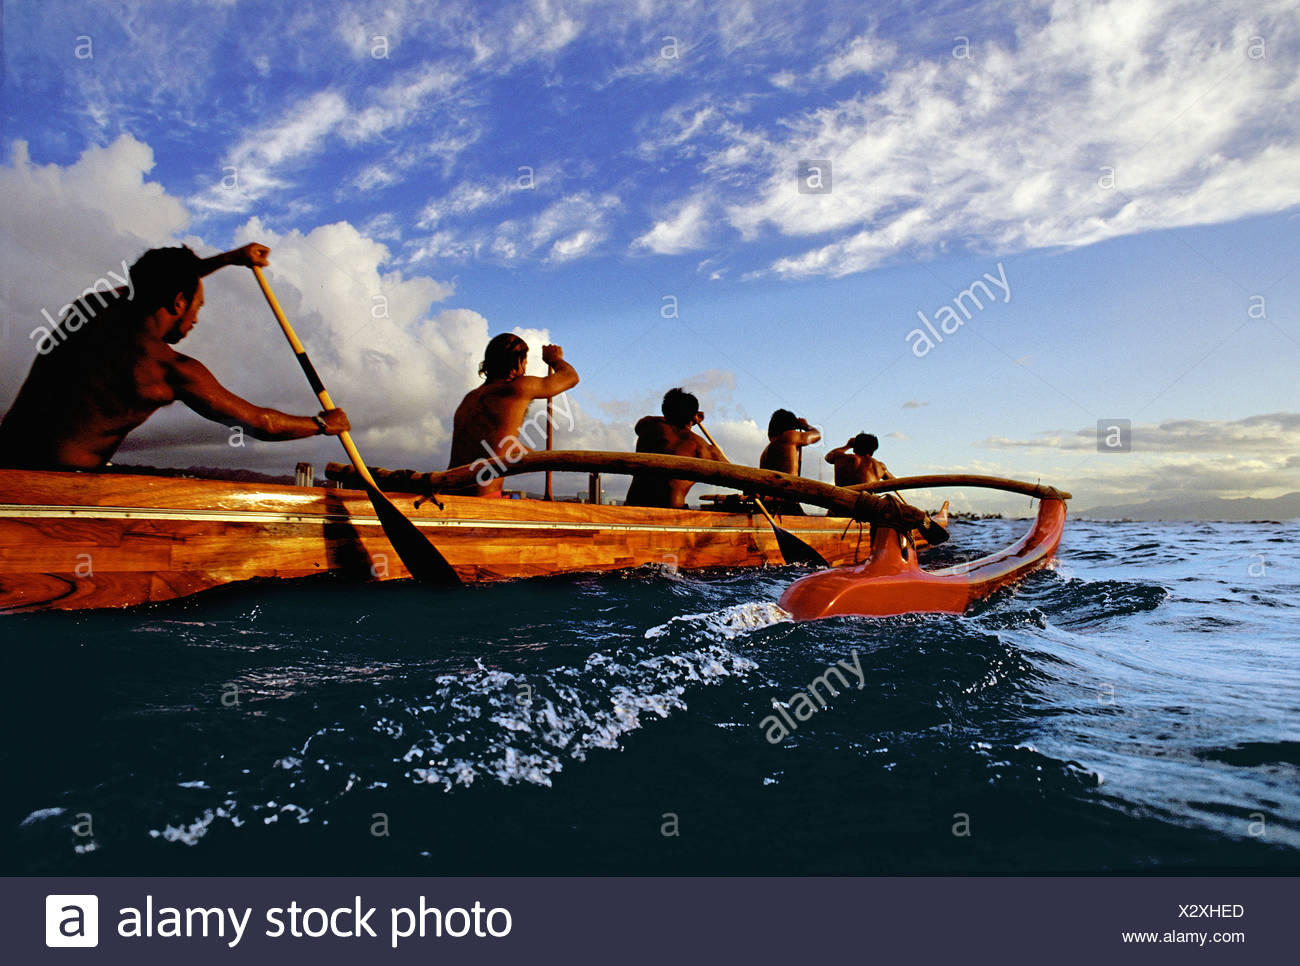 Paddlers in a koa canoe off Waikiki Beach on a beautiful afternoon, photographed from water level. Stock Photo